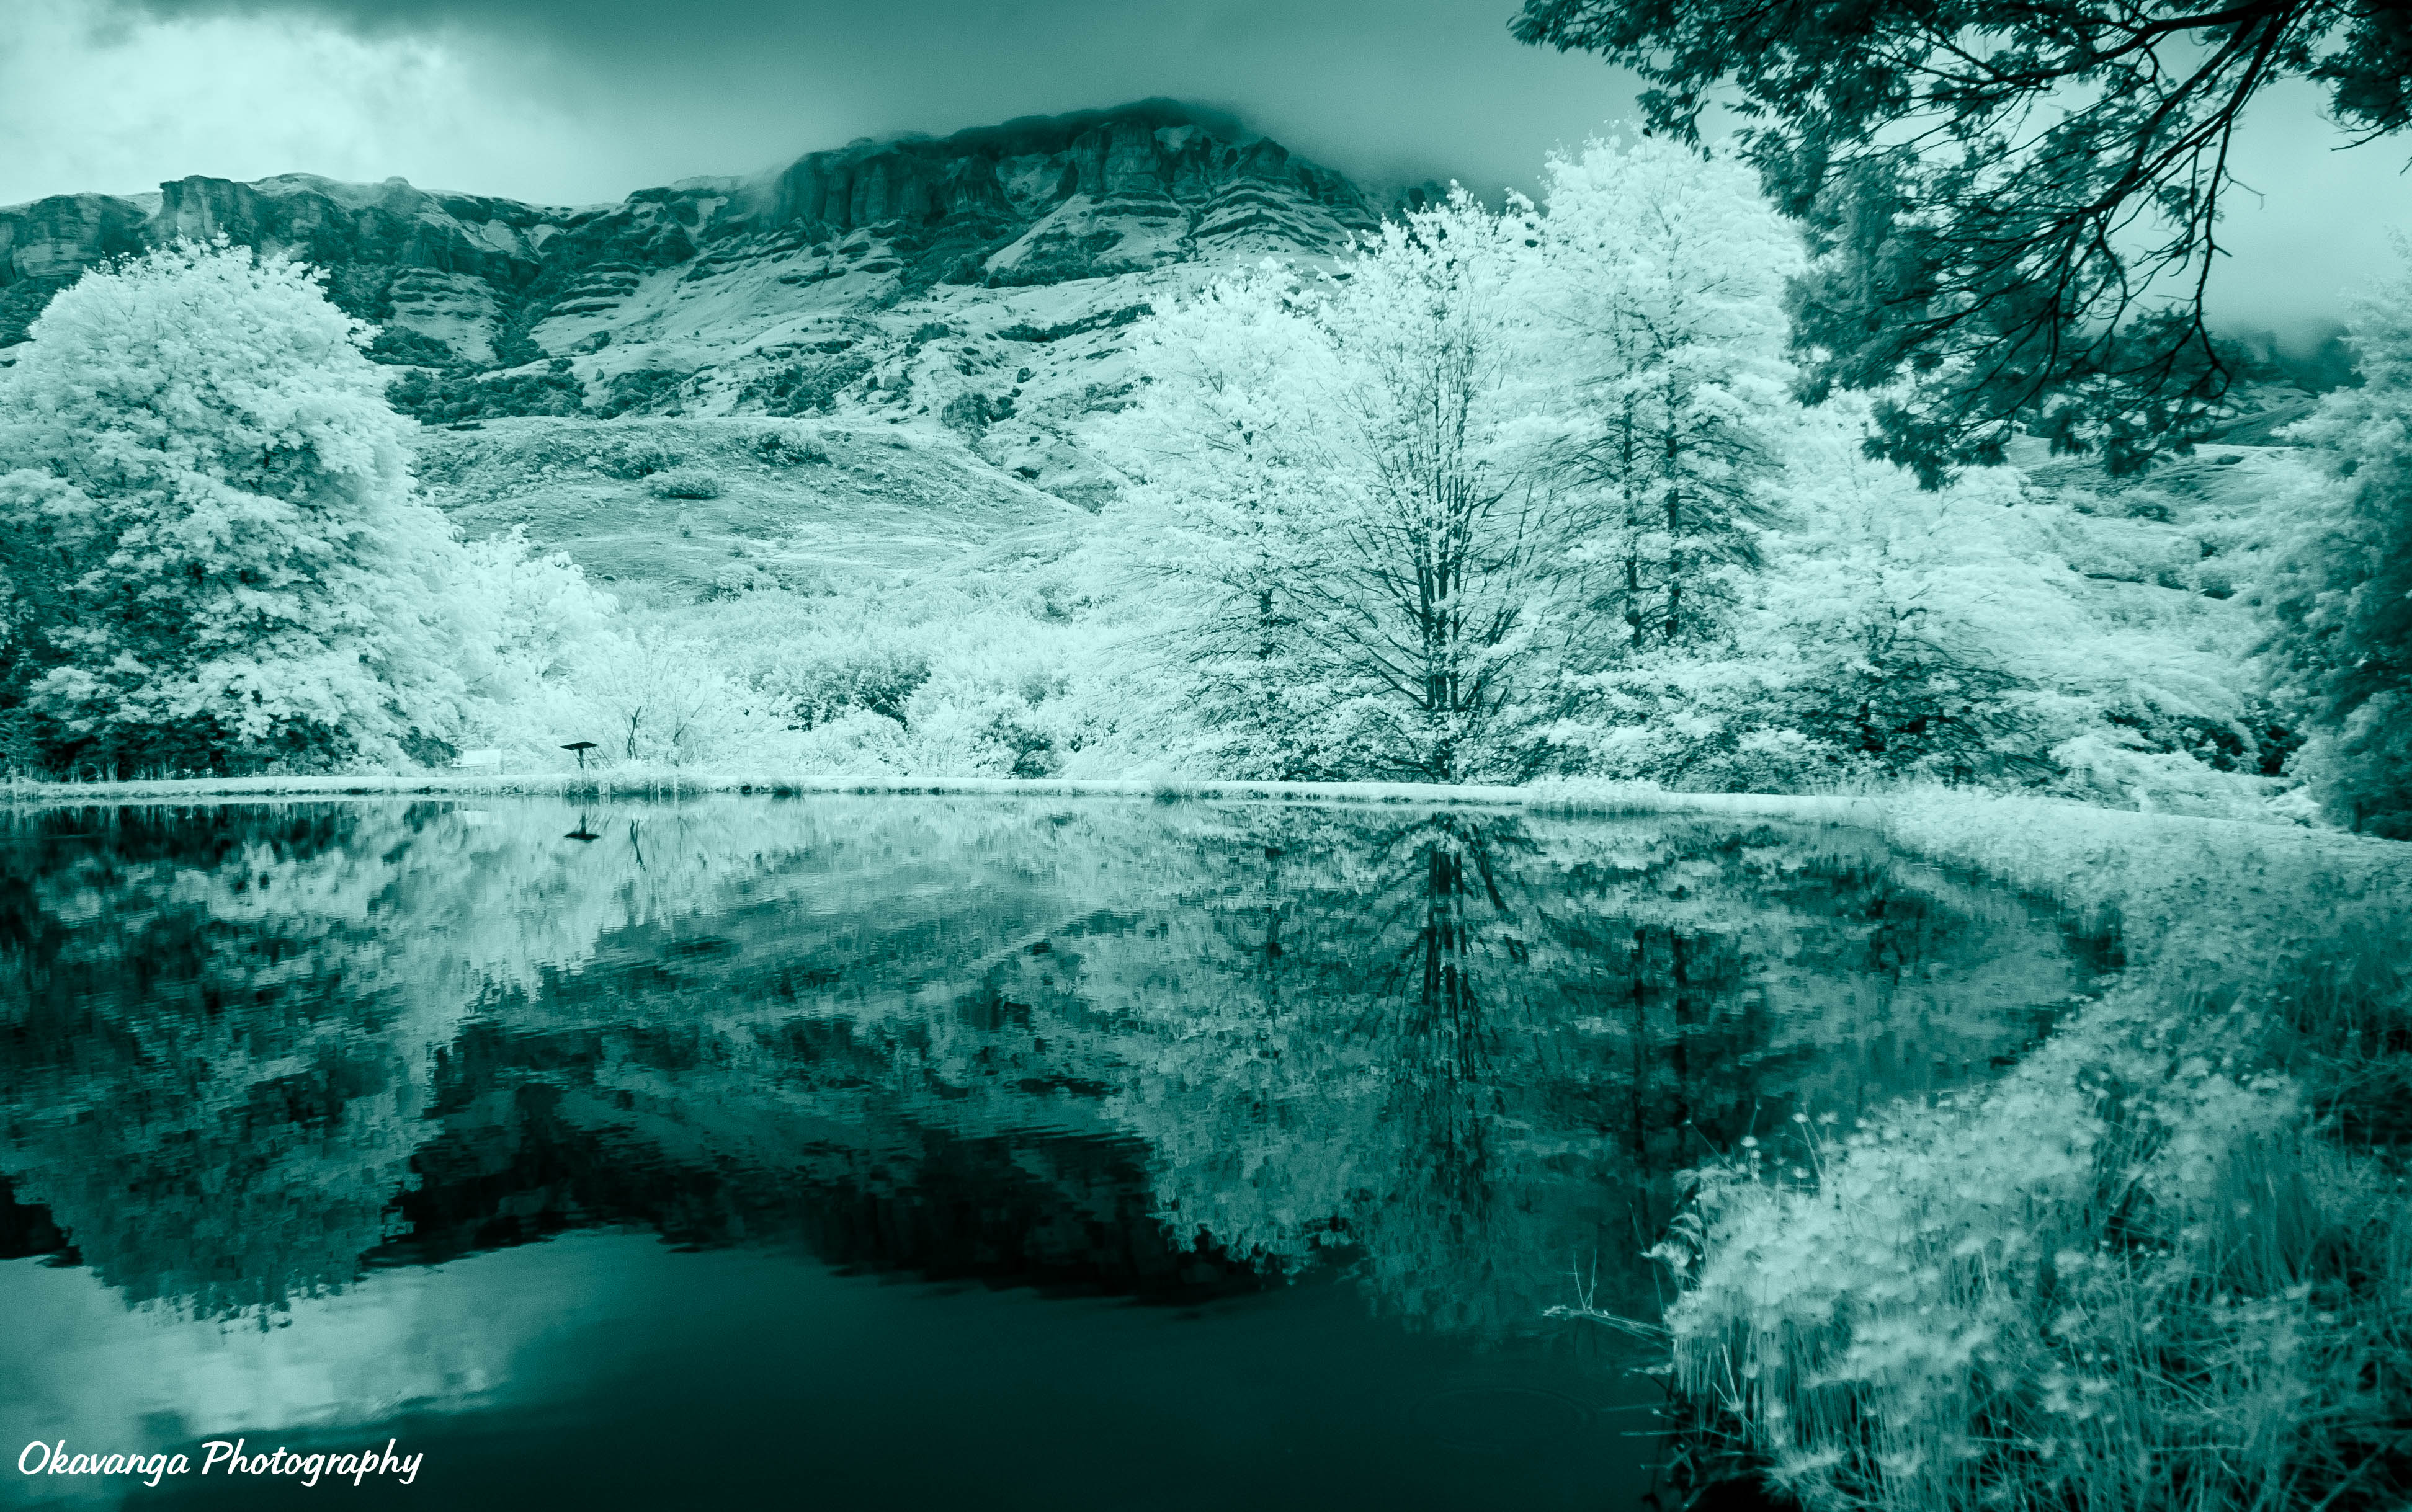 Infrared Cleopatra Lake by Okavanga